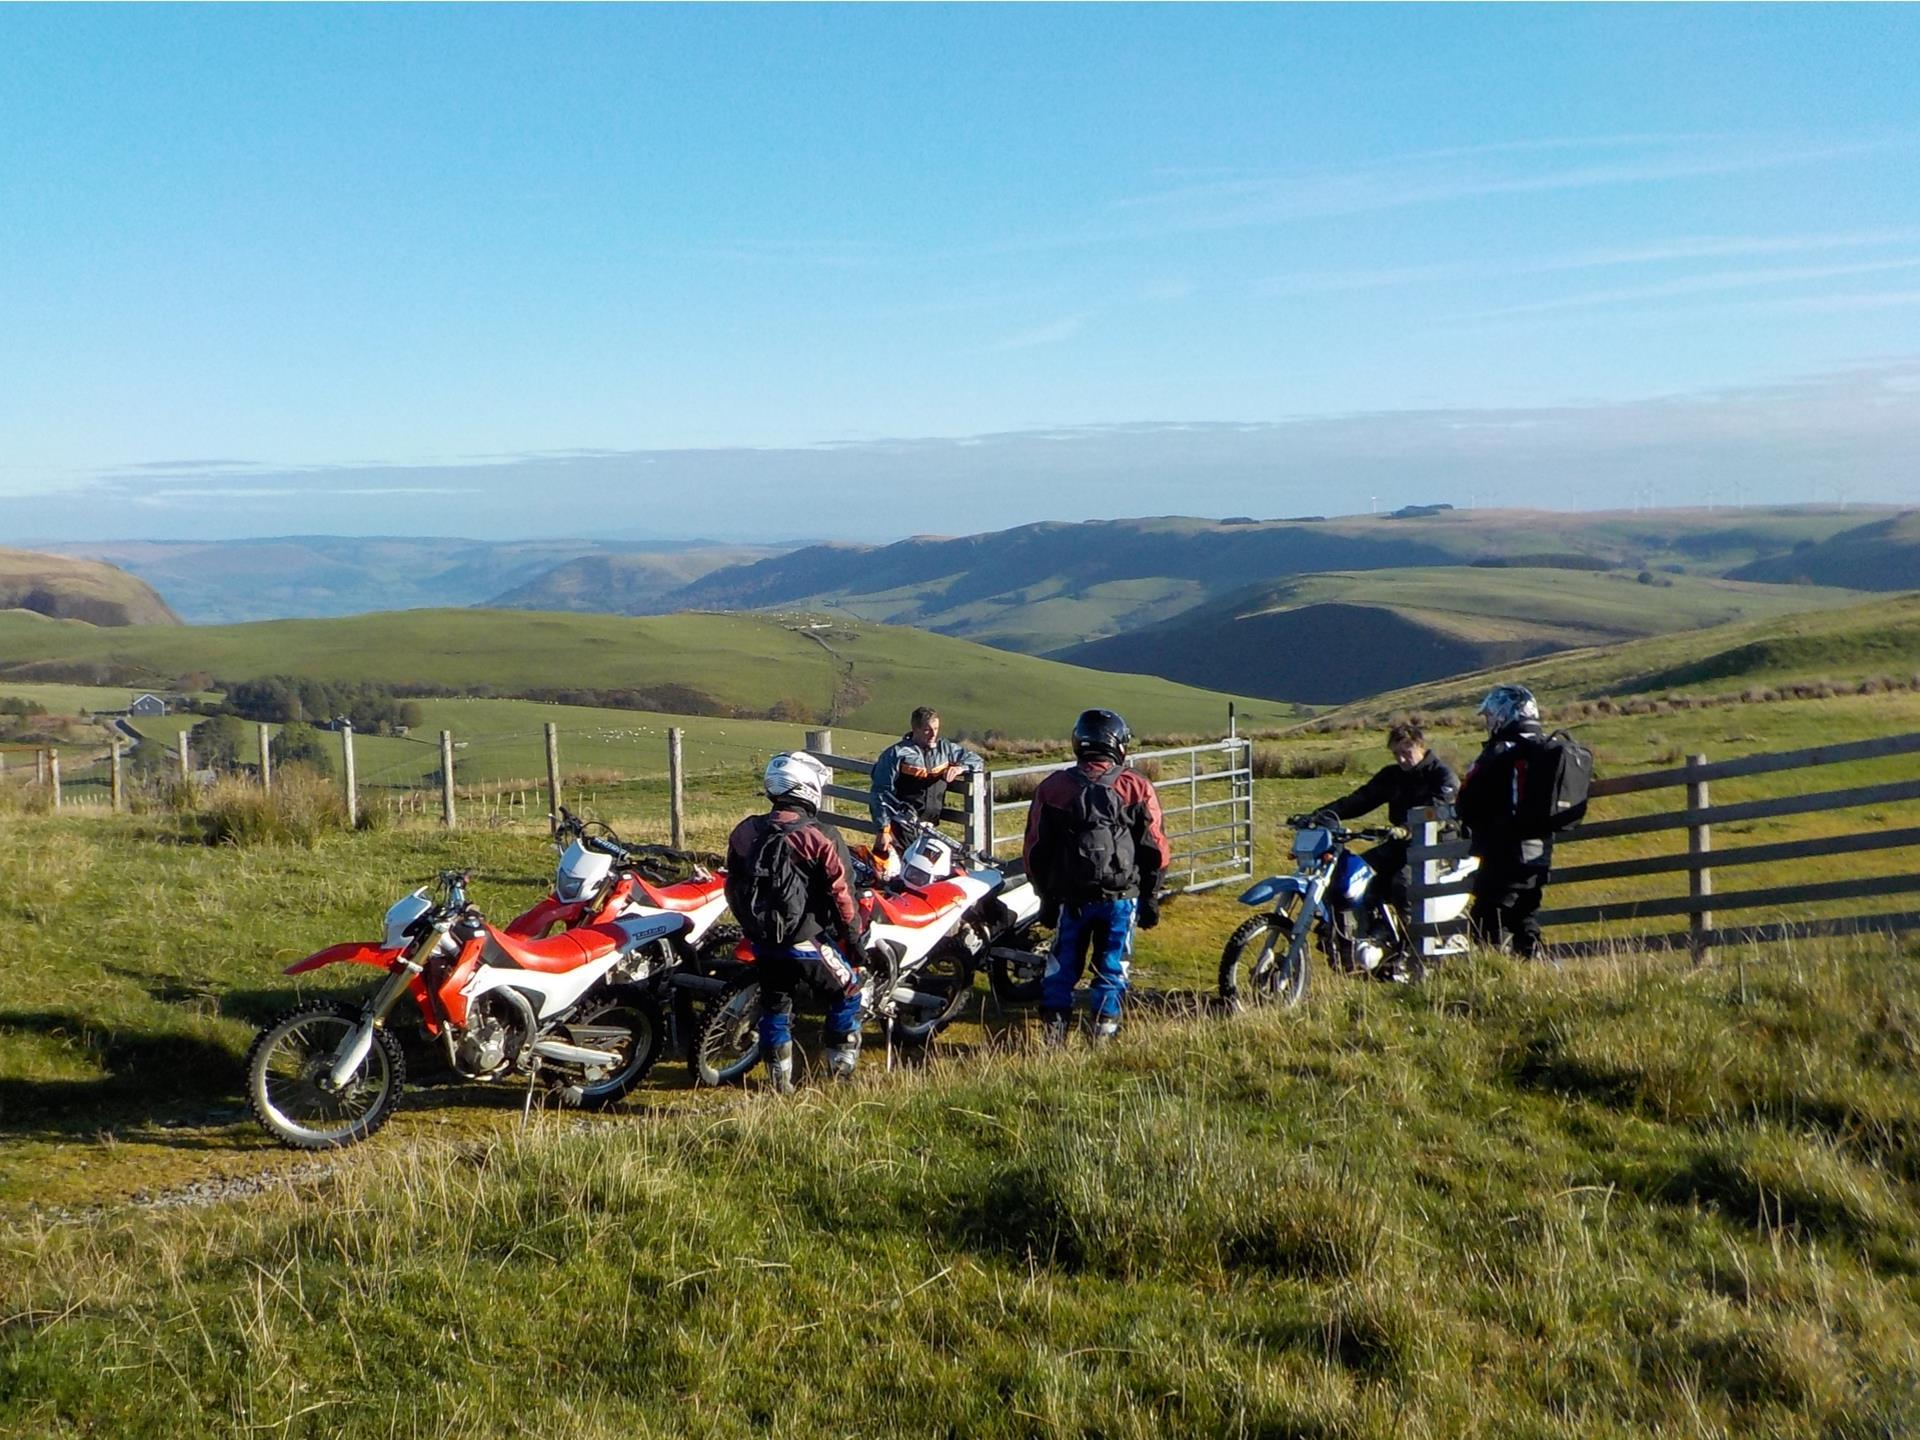 Group of motorcyclists in the hills